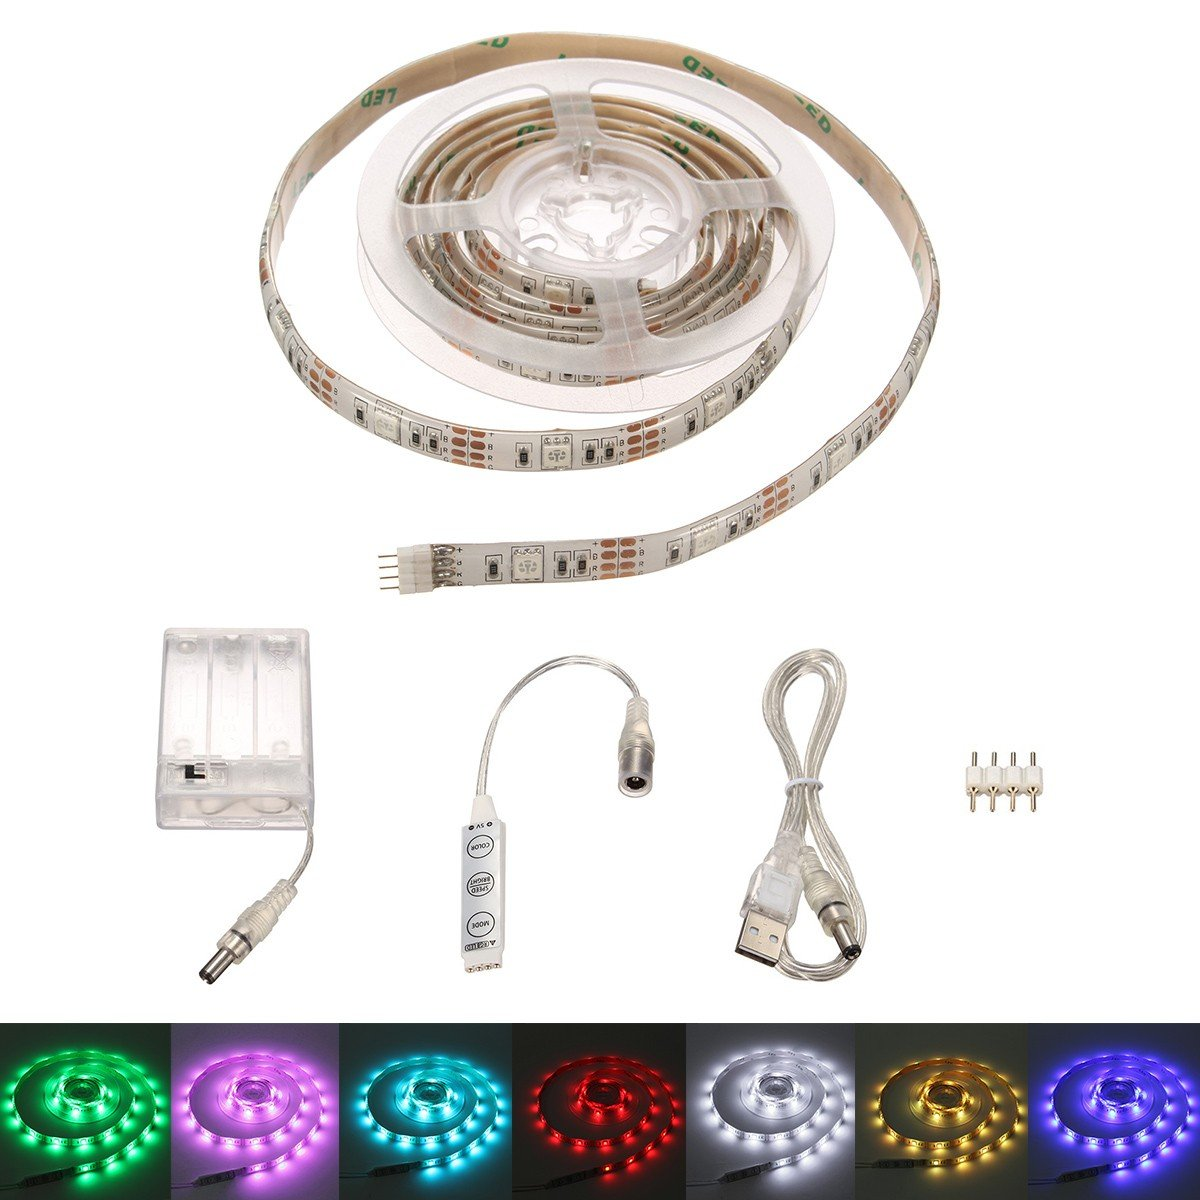 Glisteny Strip Light, Flexible Lighting Ribbon USB Light Strips Waterproof 2M 5050 SMD 60 LED + Controller + Battery Box + 4 PIN For Gardens Home Car Bar DIY Party Decoration White Panel